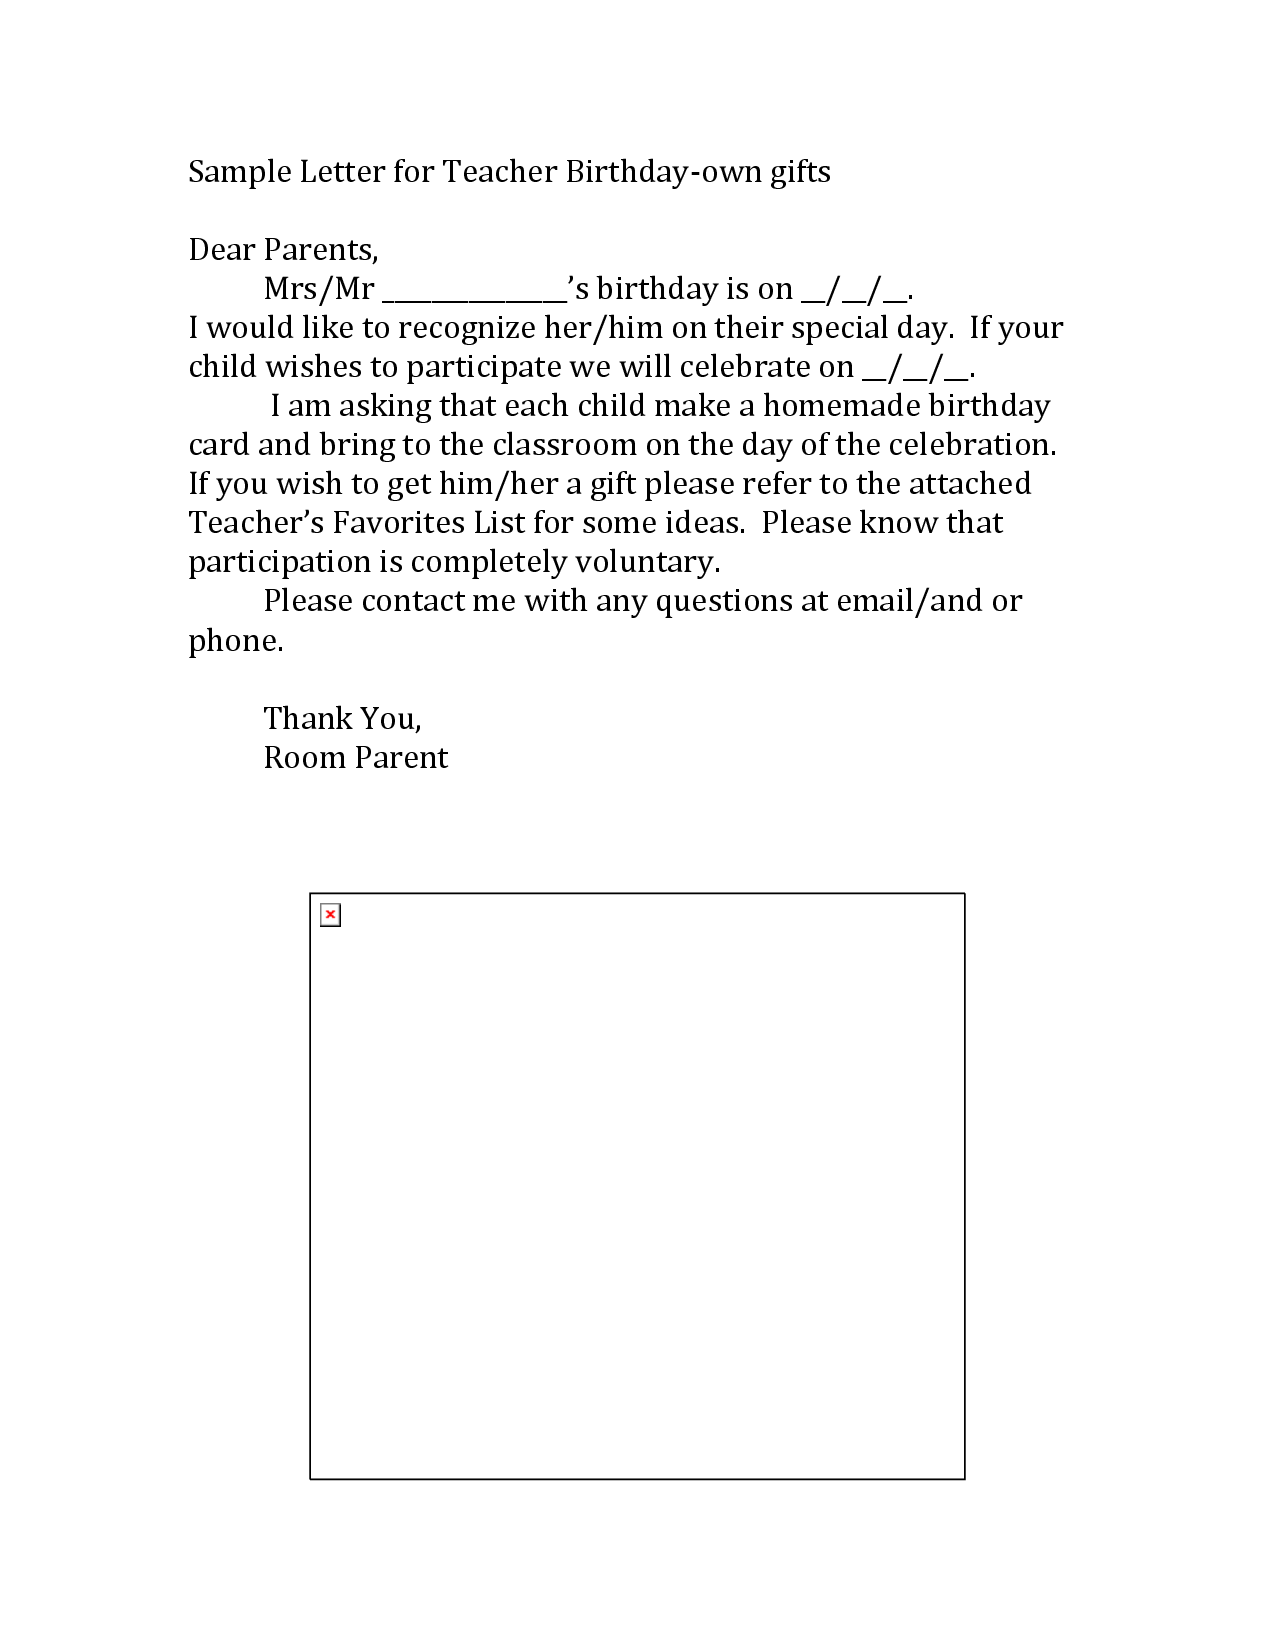 teacher templates letters parents sample letter for teacher birthday collecting _ for a gift